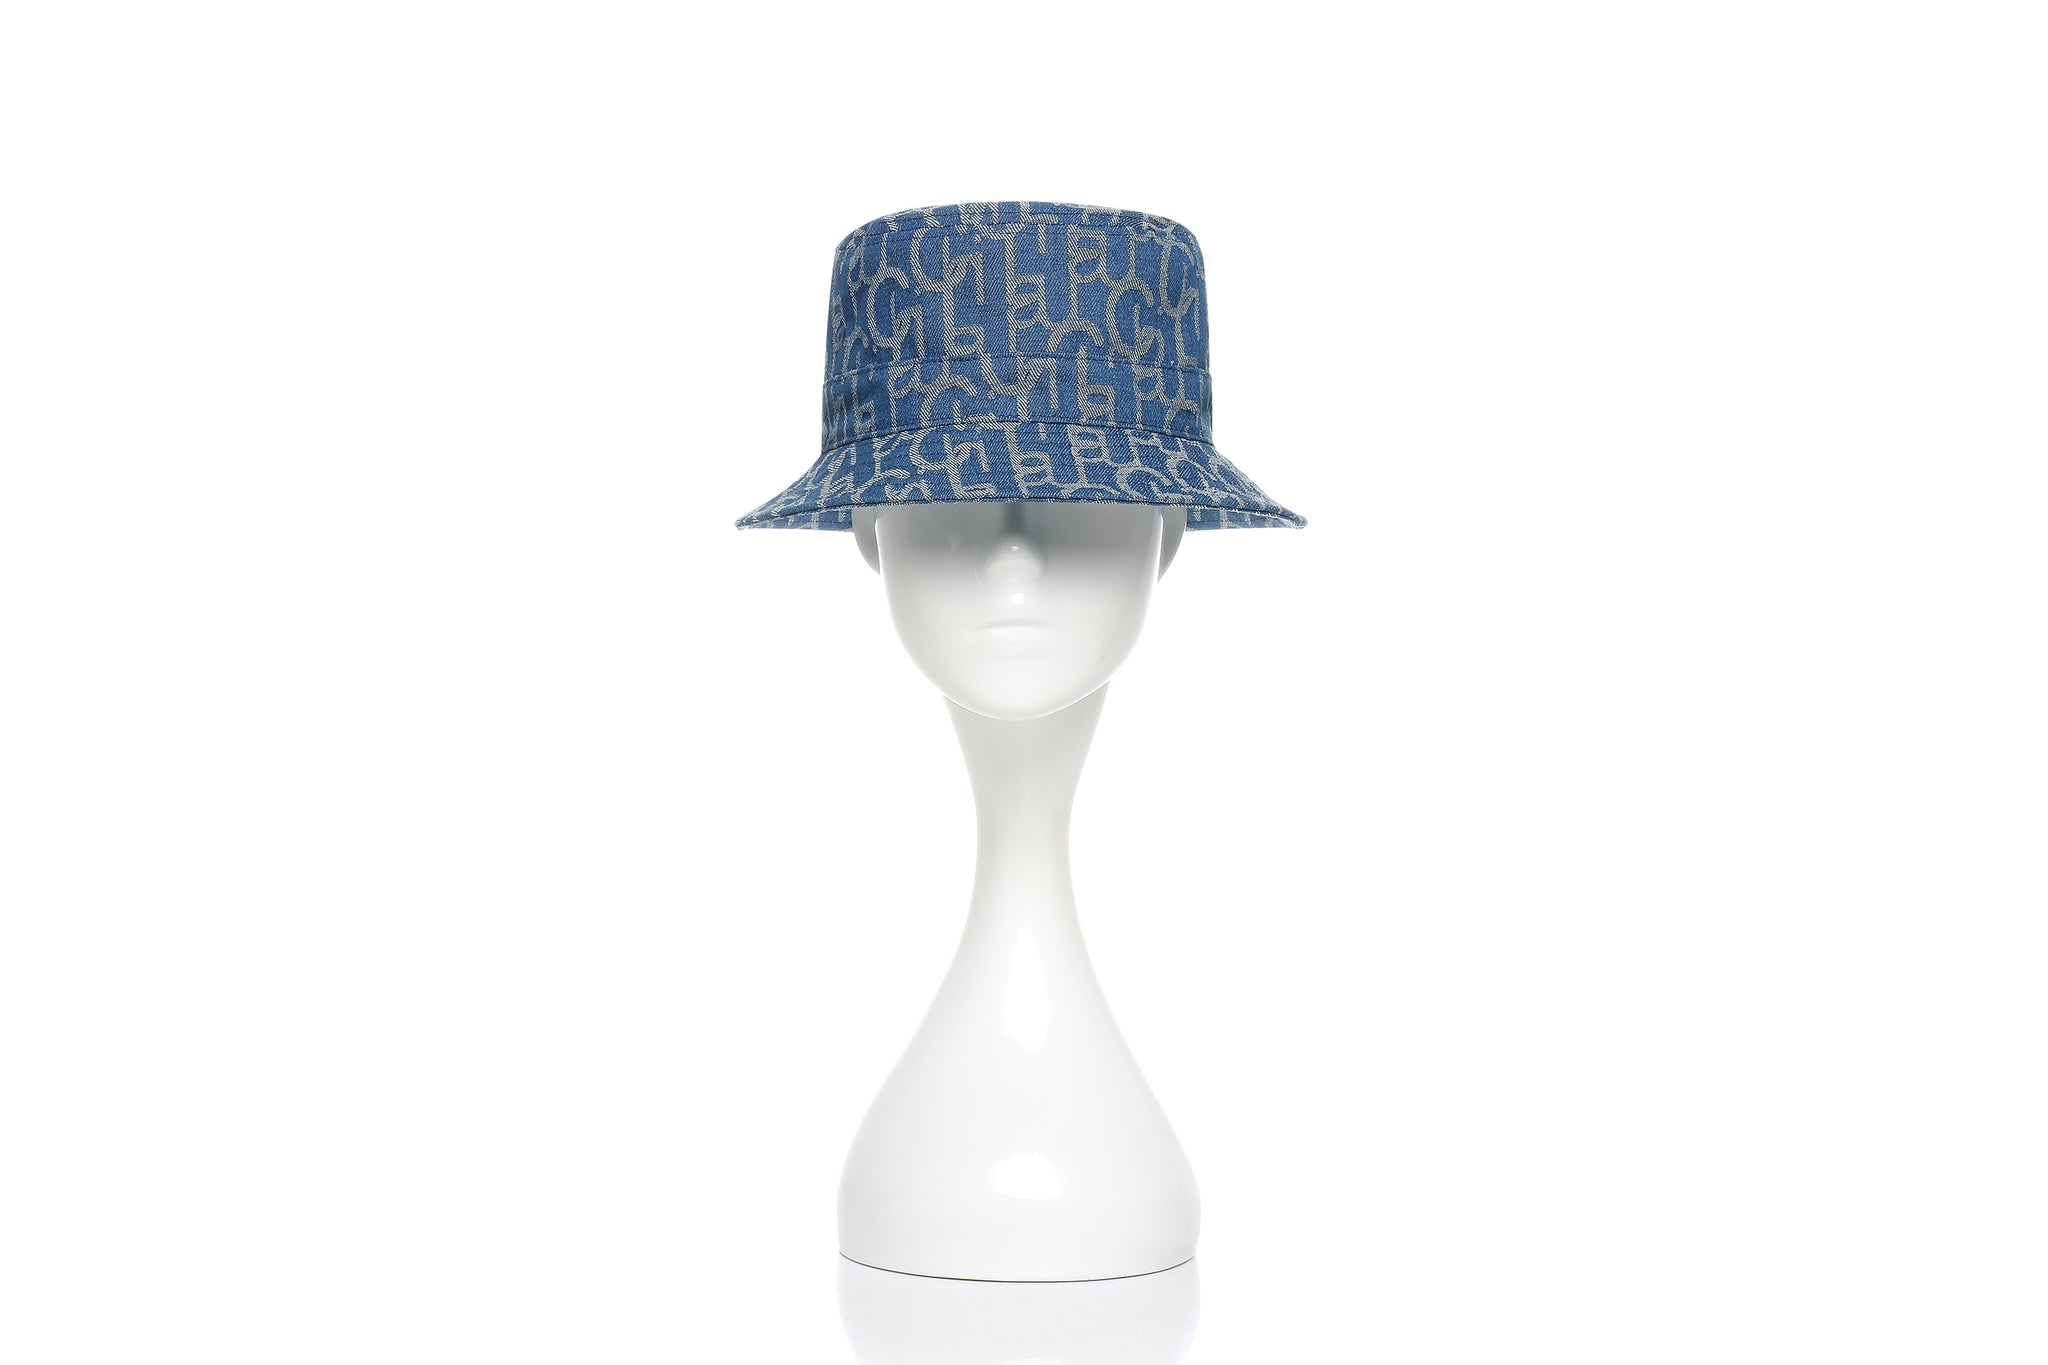 Chichi Laulau Jacquard Bucket Hat, Small Brim, Light Blue